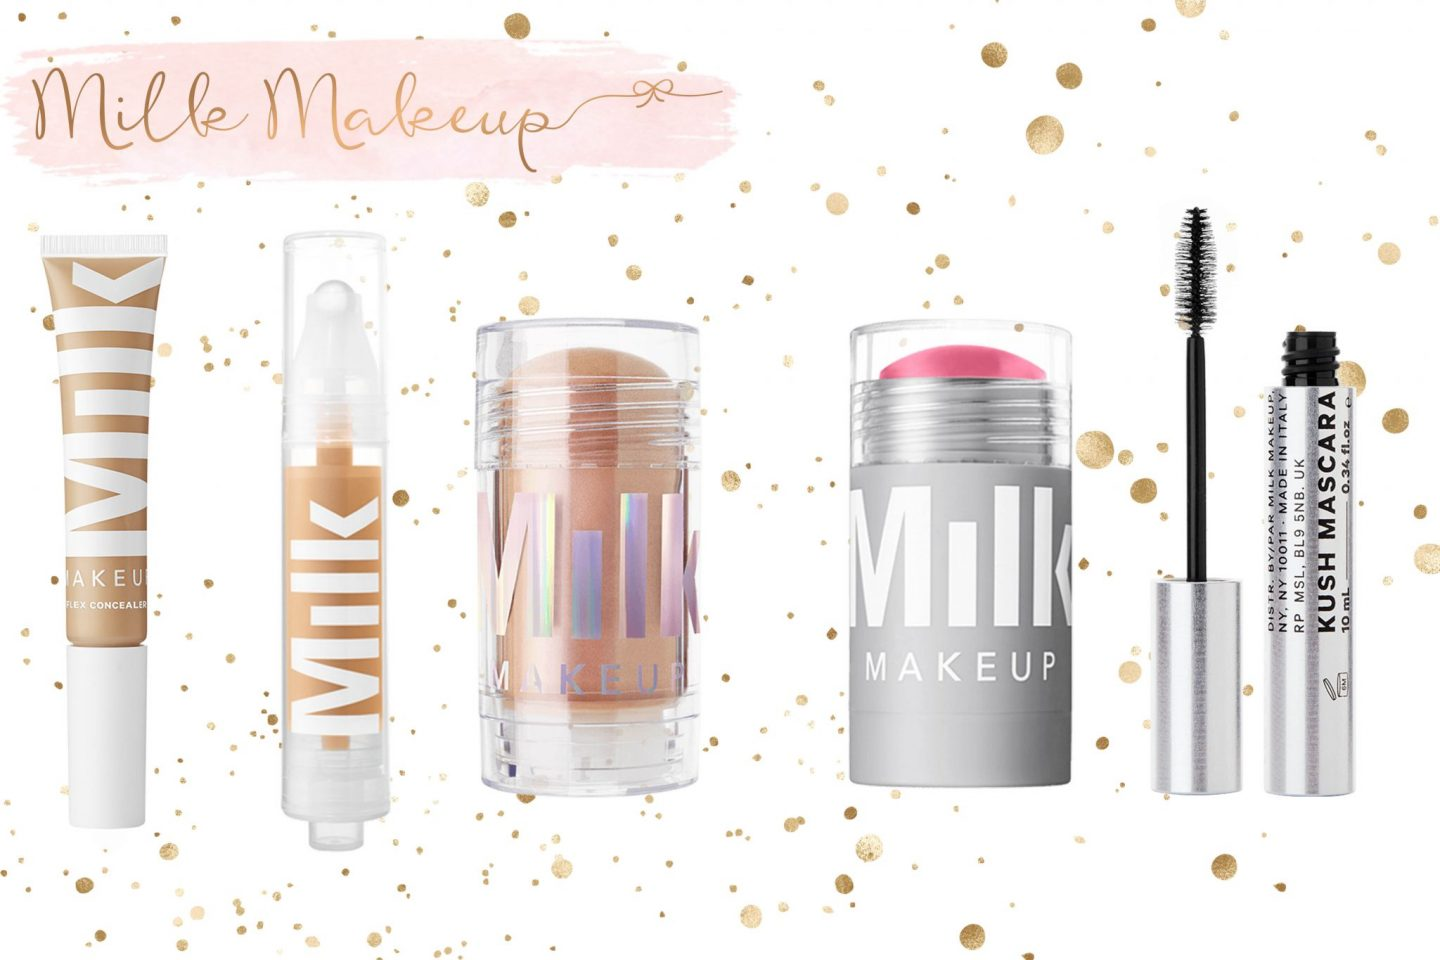 Makeup Brands I'm Dying To Try Out Now - Milk Makeup